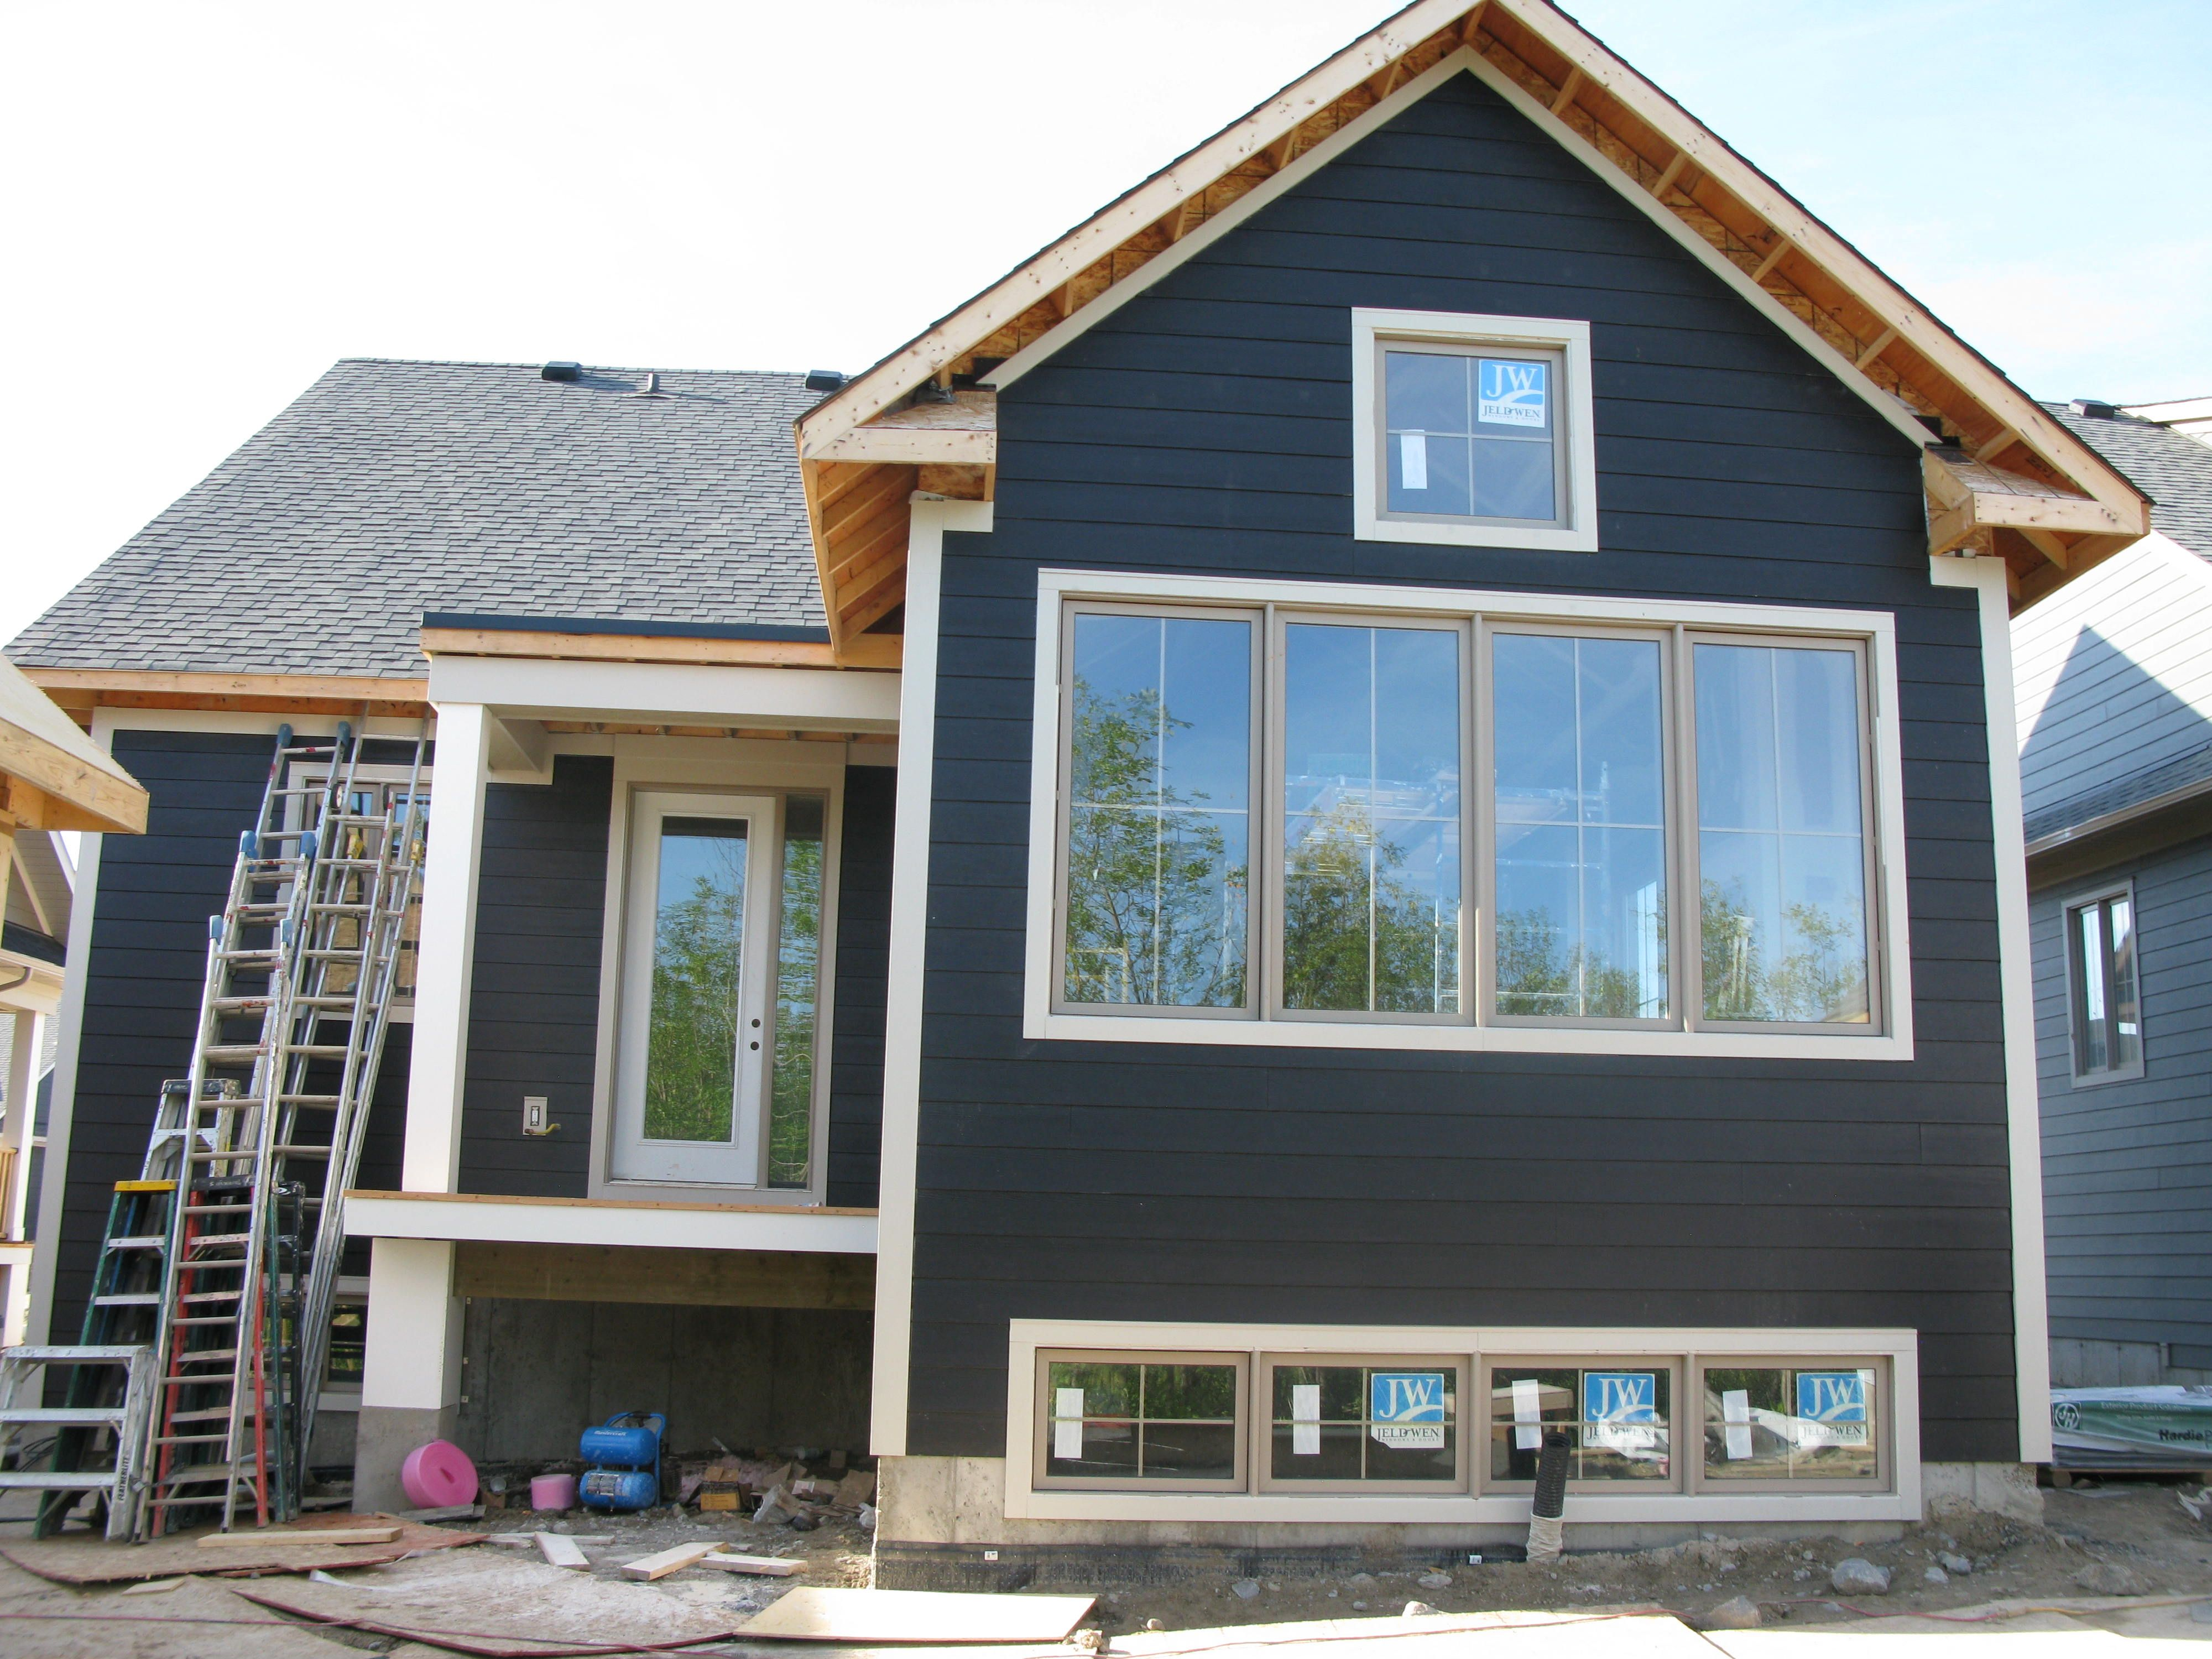 James Hardie Midnight Black And Cobblestone Trim At Windfall House Exterior Siding Colors Hardie Siding